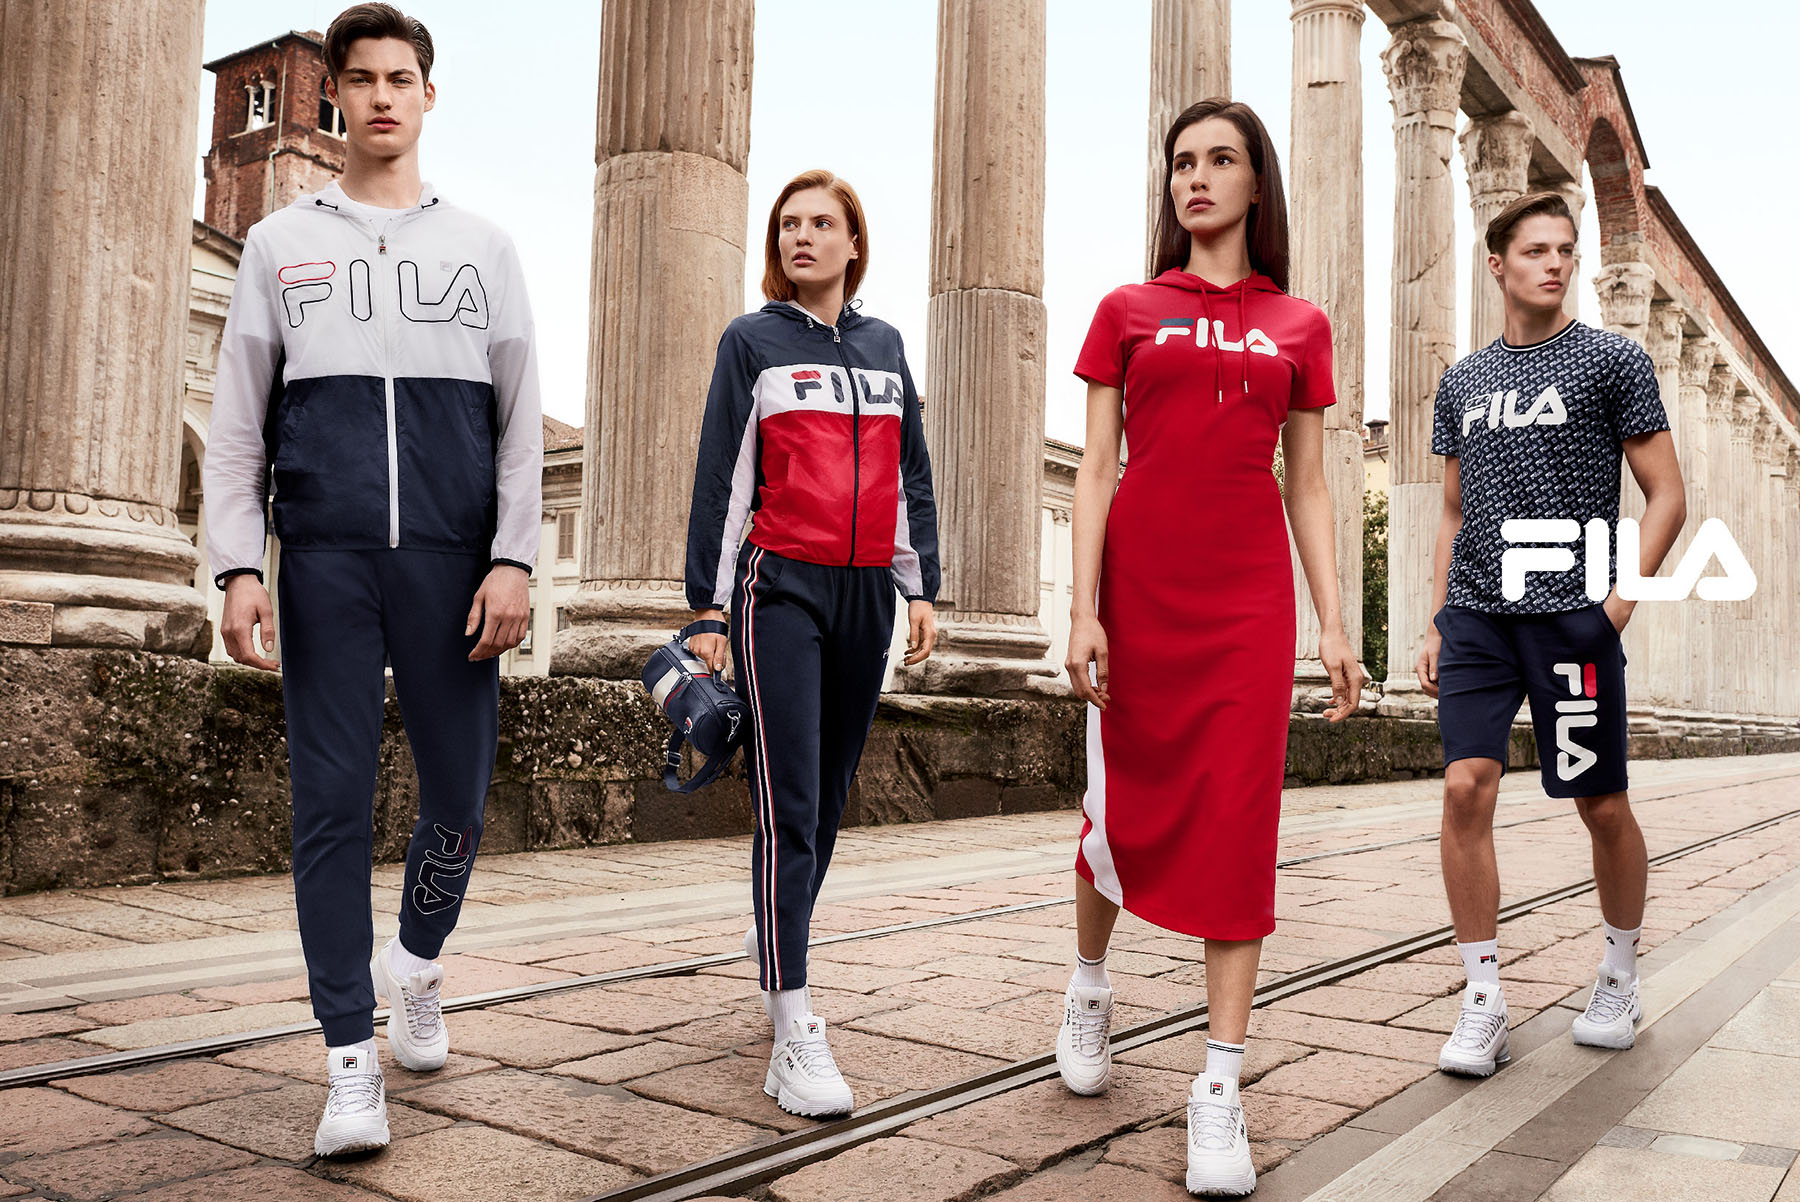 Fila Red Line 2018 | David Umberto Zappa | Fila | Numerique Retouch Photo Retouching Studio